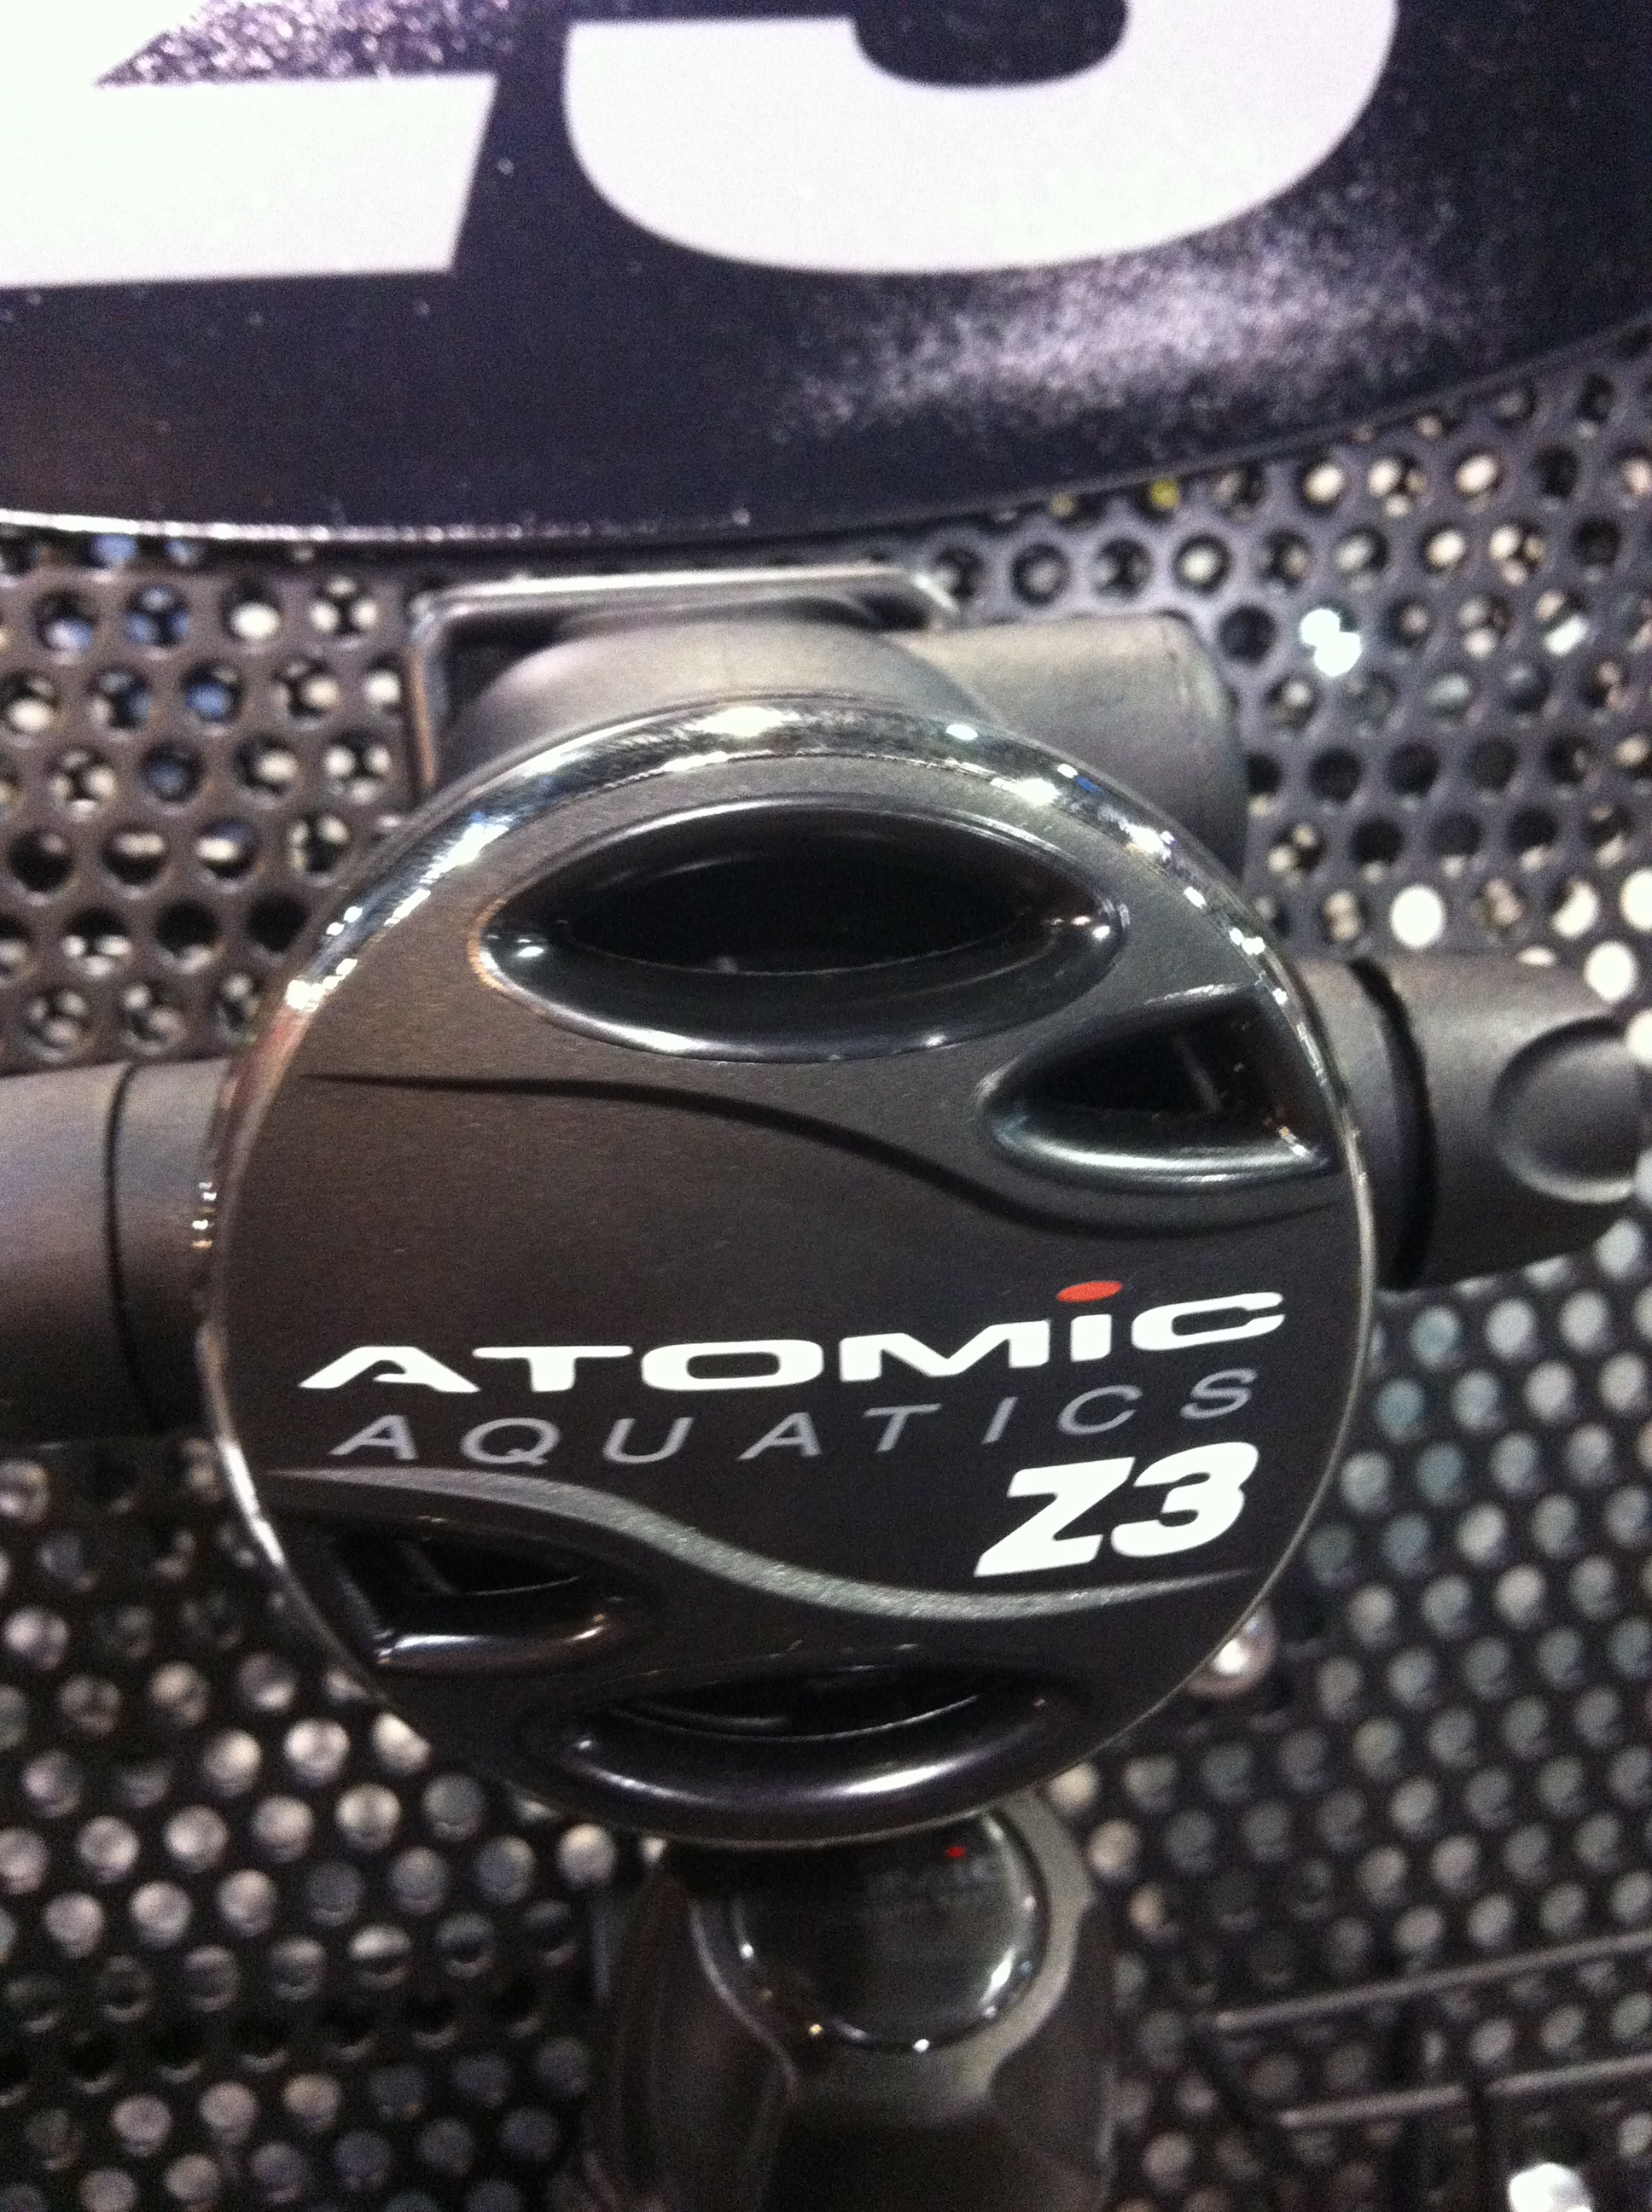 DEMA Show 2012: Atomic Aquatics Unveils New Z3 Regulator For Budget Divers